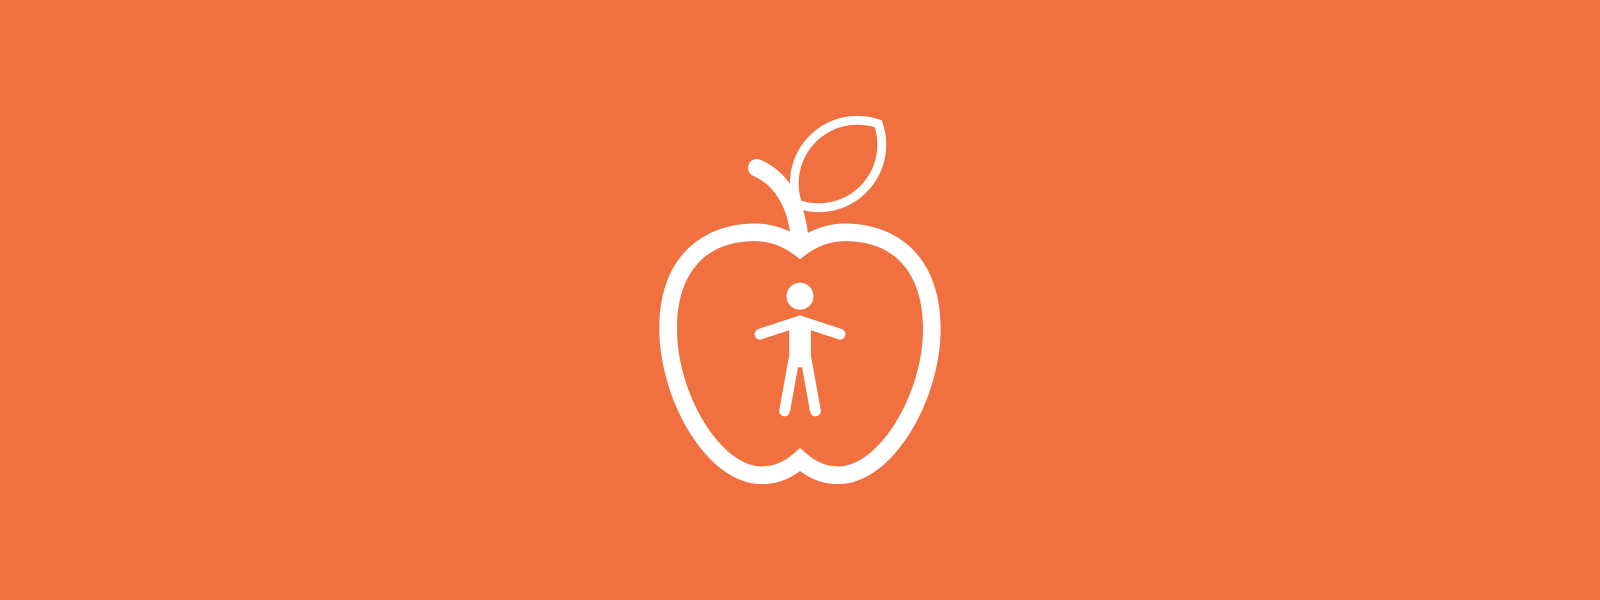 Icon background of apple with person inside